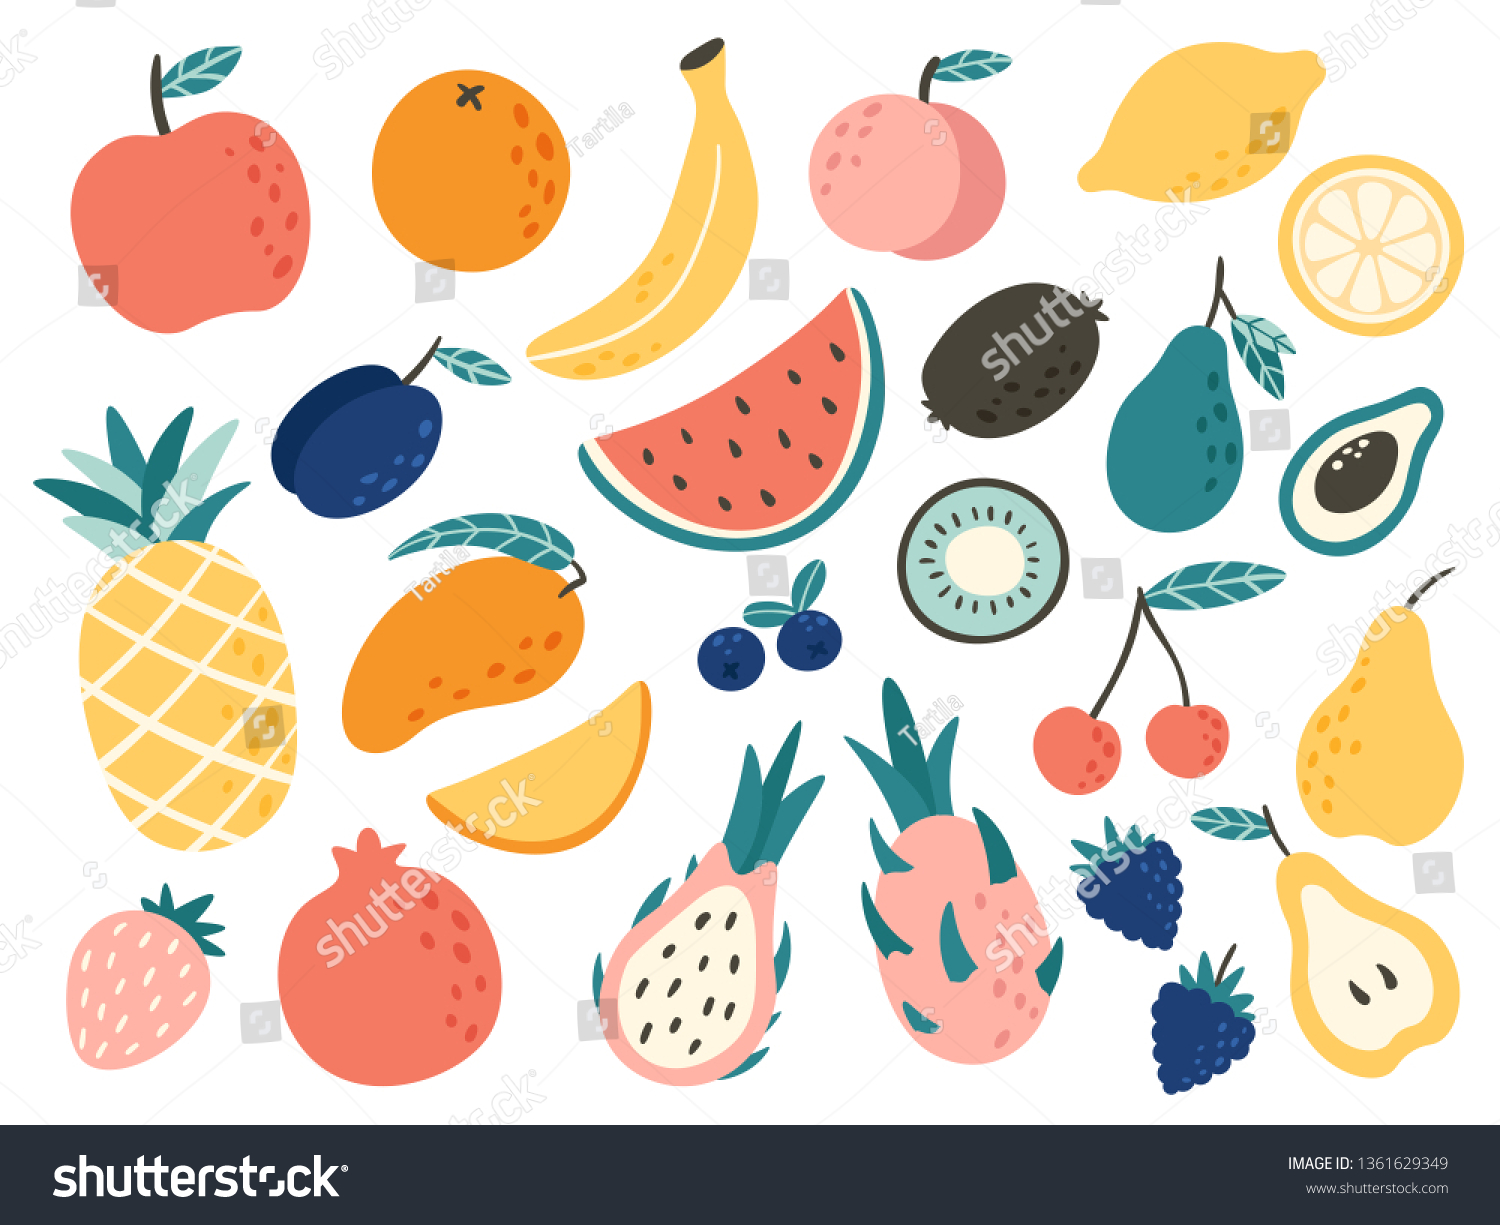 Doodle fruits. Natural tropical fruit, doodles citrus orange and vitamin lemon. Vegan kitchen apple hand drawn, organic fruits or vegetarian food. Vector isolated icons illustration set #1361629349